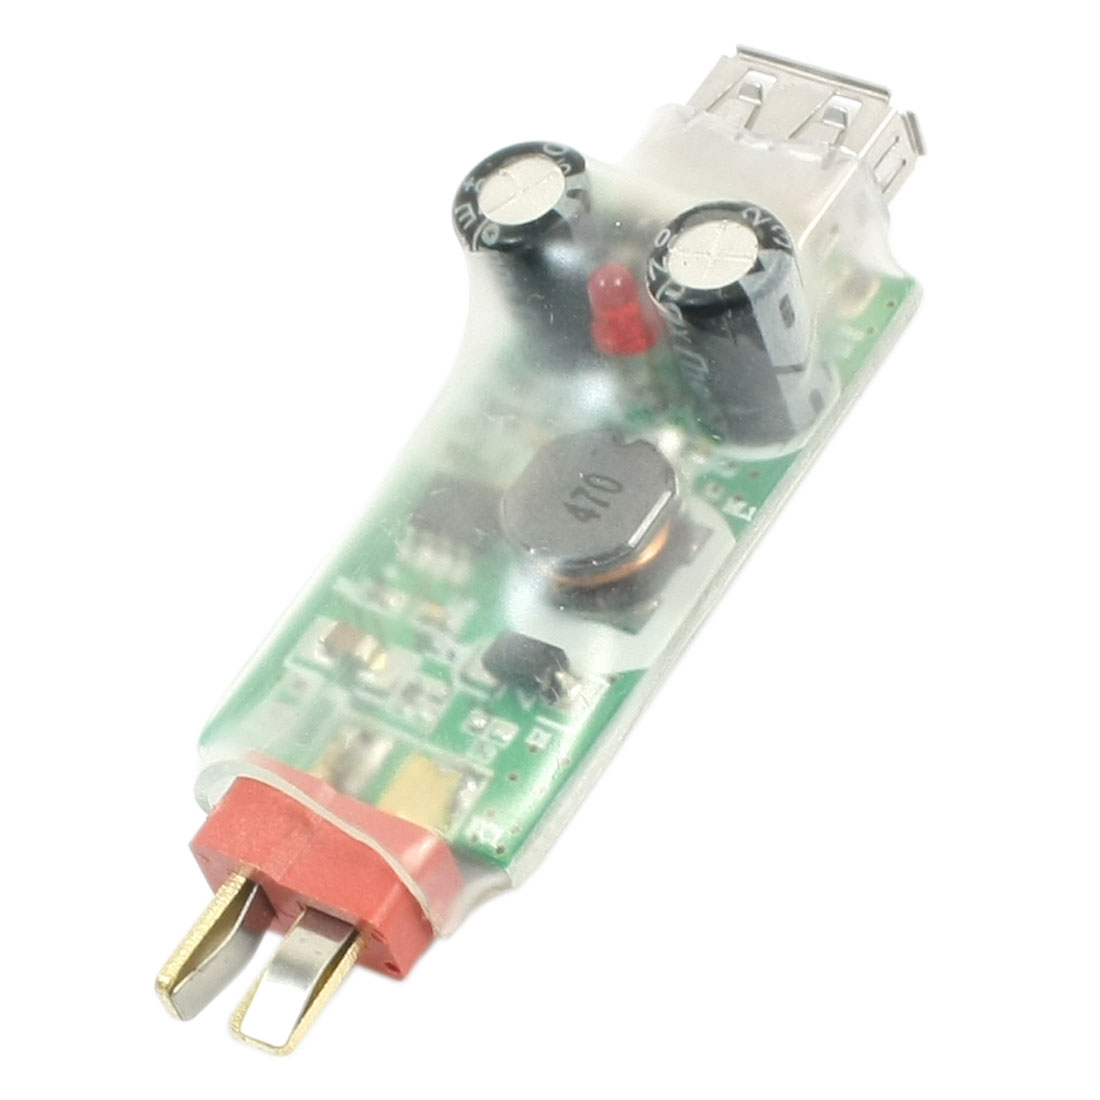 7.4-22.2V Input 5V Output Male to USB 2.0 Male RC Model Lipo Battery Conversion Charger Module